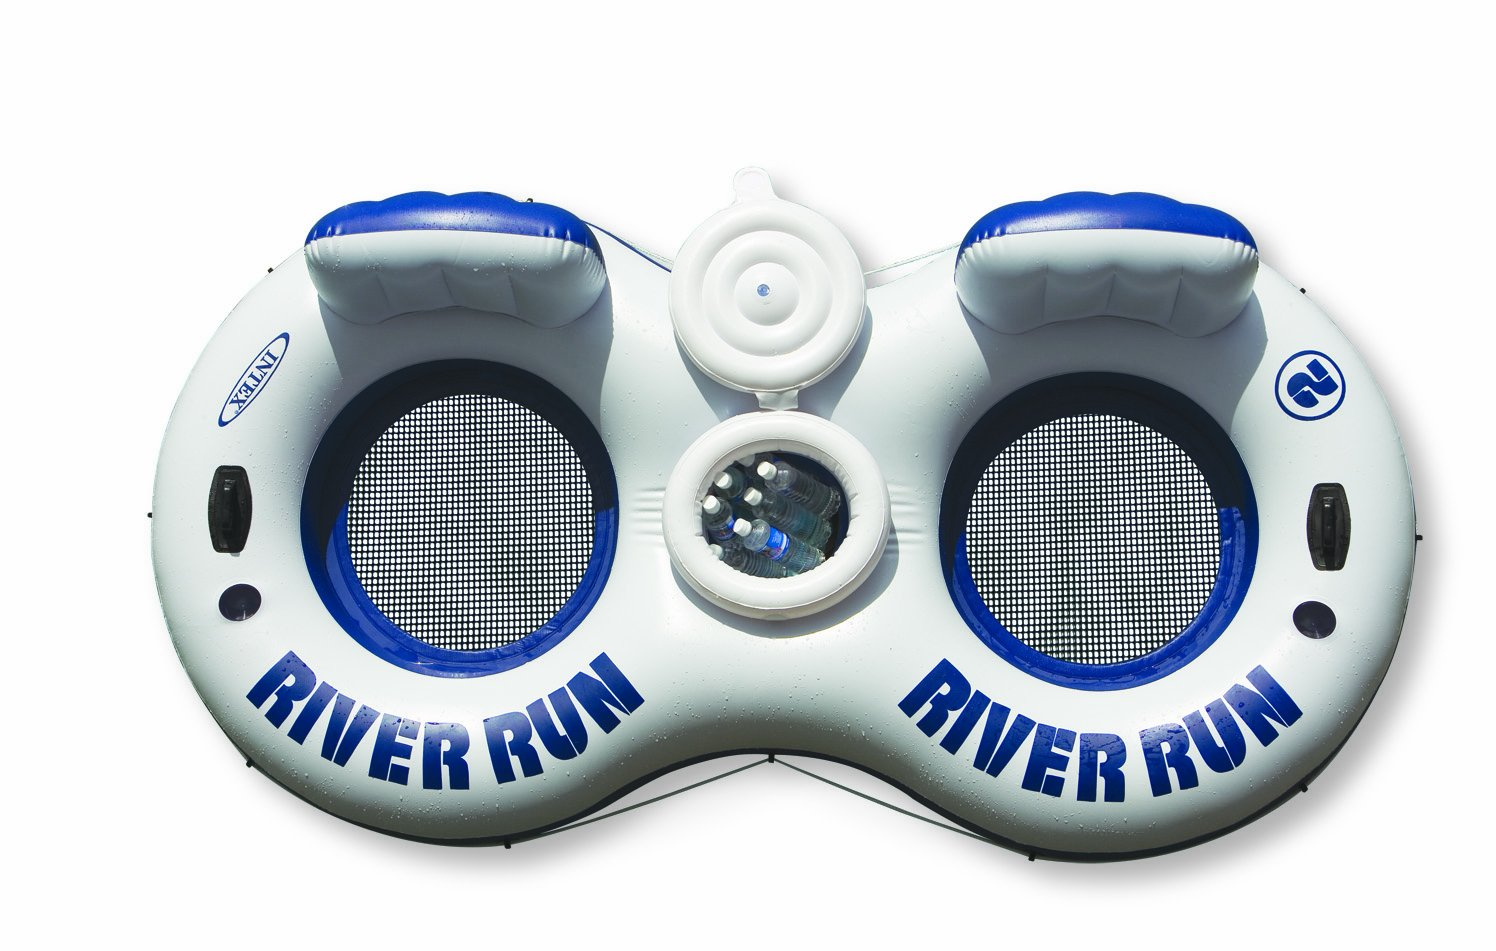 Intex River Run II $29.00